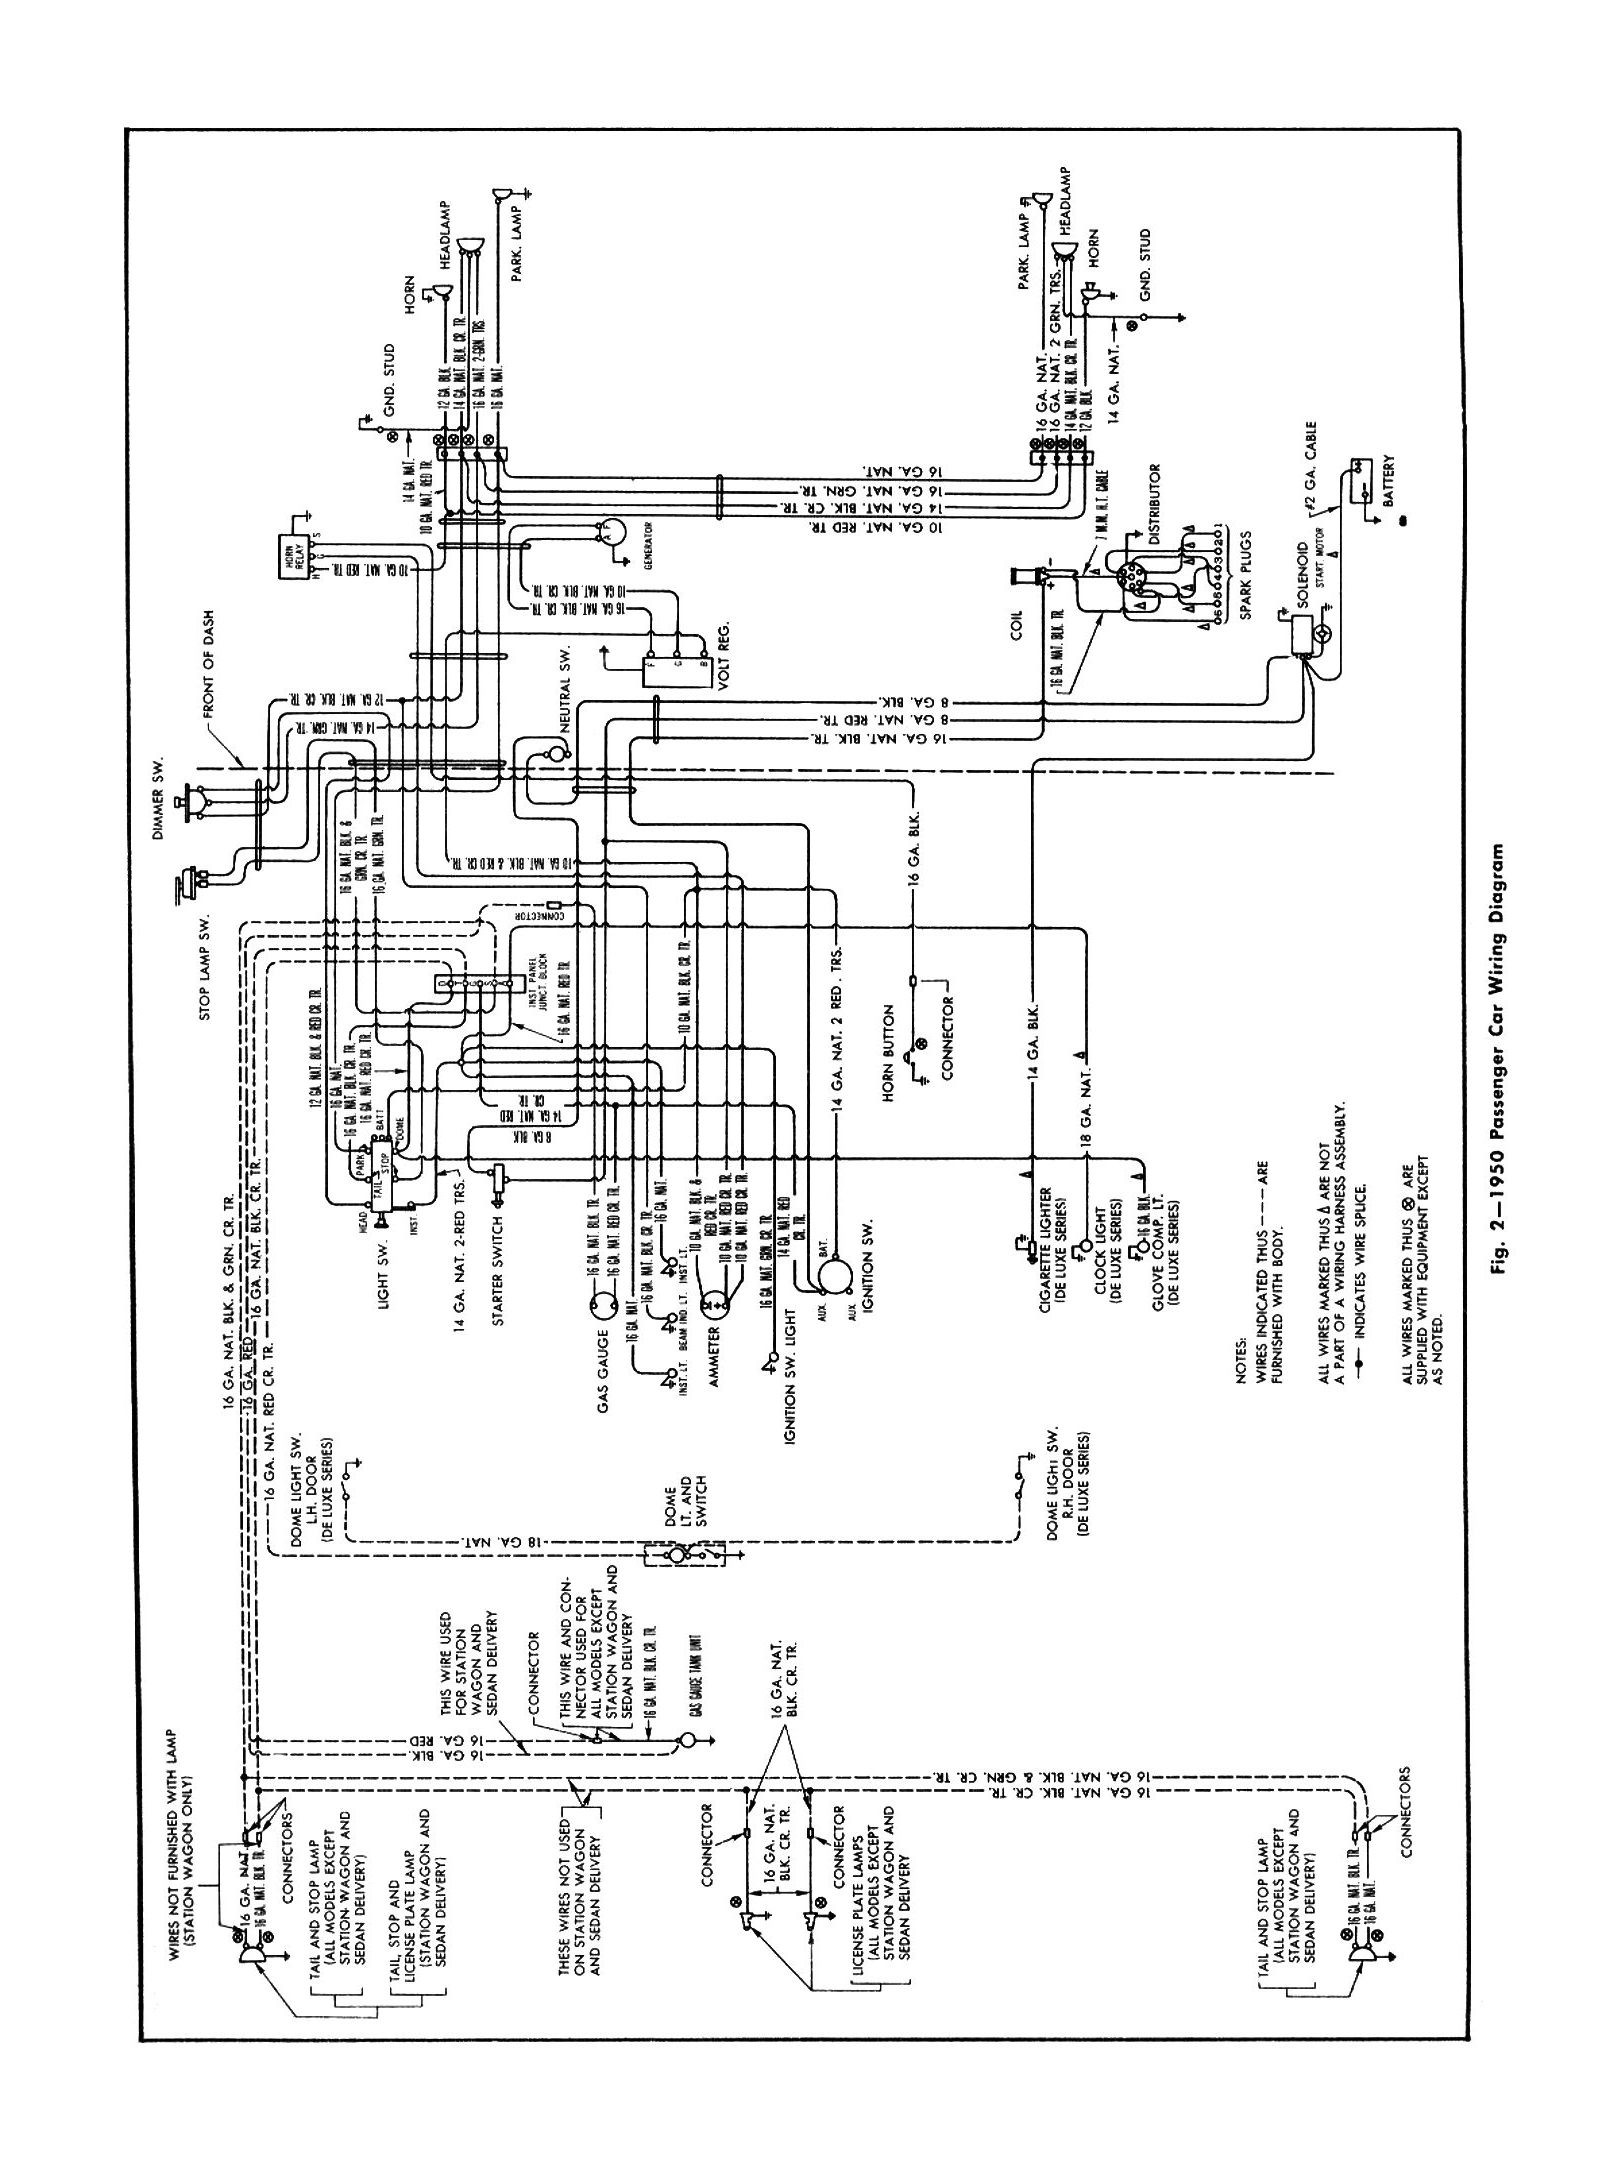 50car chevy wiring diagrams GM Factory Wiring Diagram at reclaimingppi.co